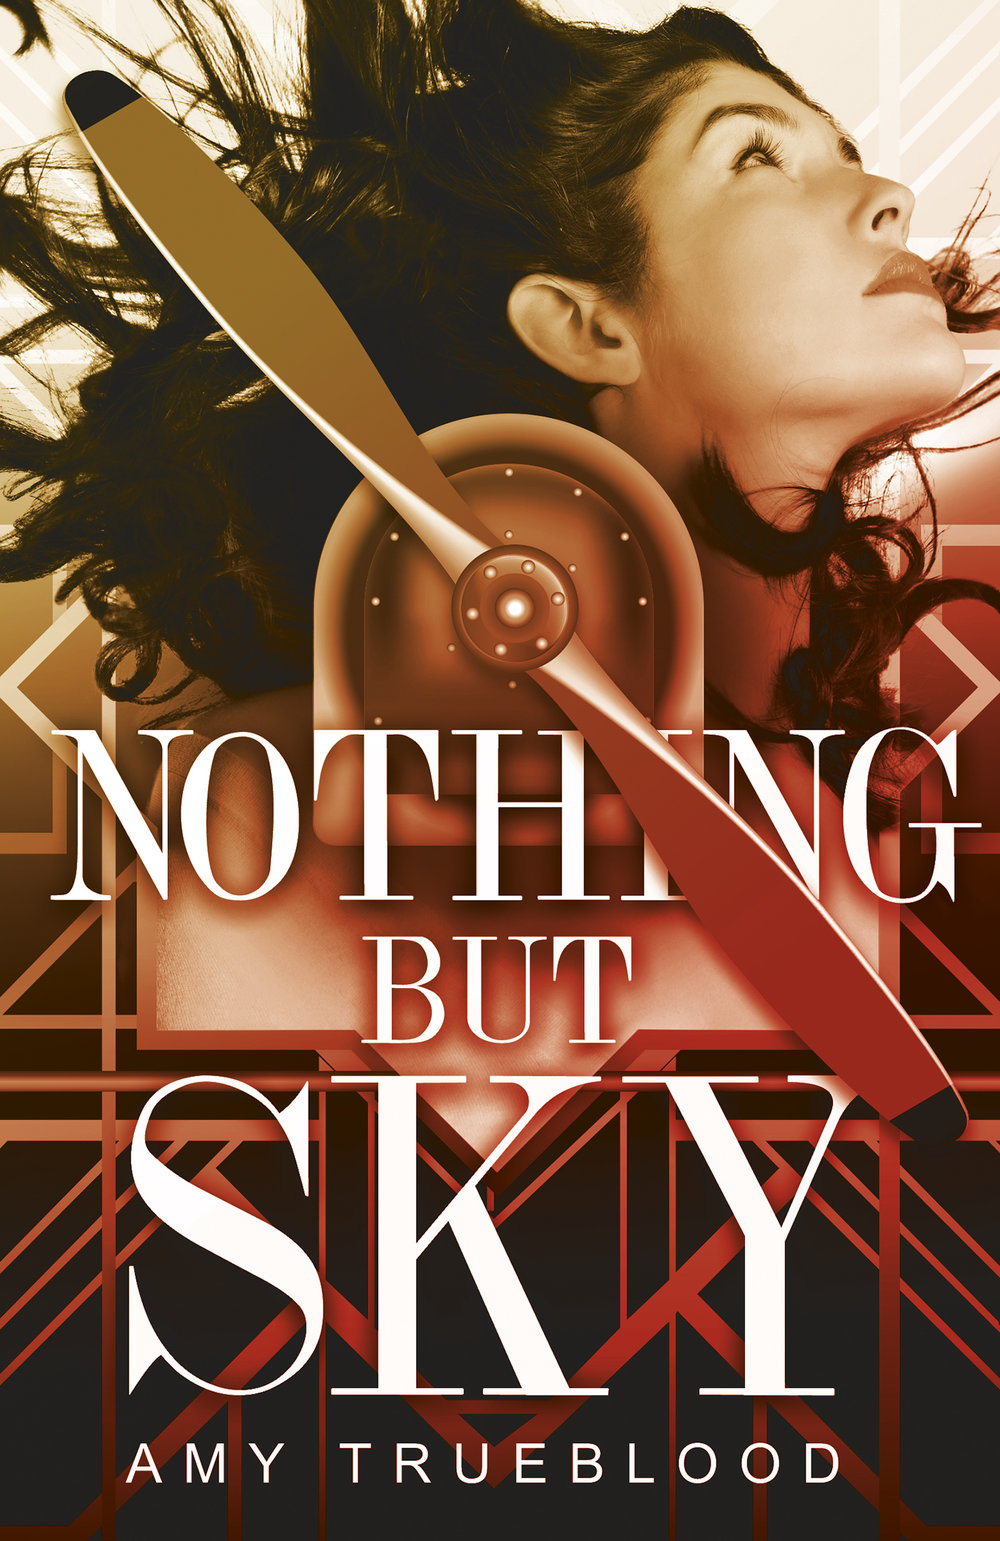 Happy book birthday to NOTHING BUT SKY by Amy Trueblood! - Grace Lafferty only feels alive when she's dangling 500 feet above ground. As a post-World War I wing walker, Grace is determined to get to the World Aviation Expo, proving her team's worth against flashier competitors and earning a coveted Hollywood contract.No one's ever questioned Grace's ambition until Henry Patton, a mechanic with plenty of scars from the battlefield, joins her barnstorming team. With each new death-defying trick, Henry pushes Grace to consider her reasons for being a daredevil.Annoyed with Henry's constant interference, and her growing attraction to him, Grace continues to test the powers of the sky. After one of her risky maneuvers saves a pilot's life, a Hollywood studio offers Grace a chance to perform at the Expo. She jumps at the opportunity to secure her future.But when a stunt goes wrong, Grace must decide whether Henry, and her life, are worth risking for one final trick.